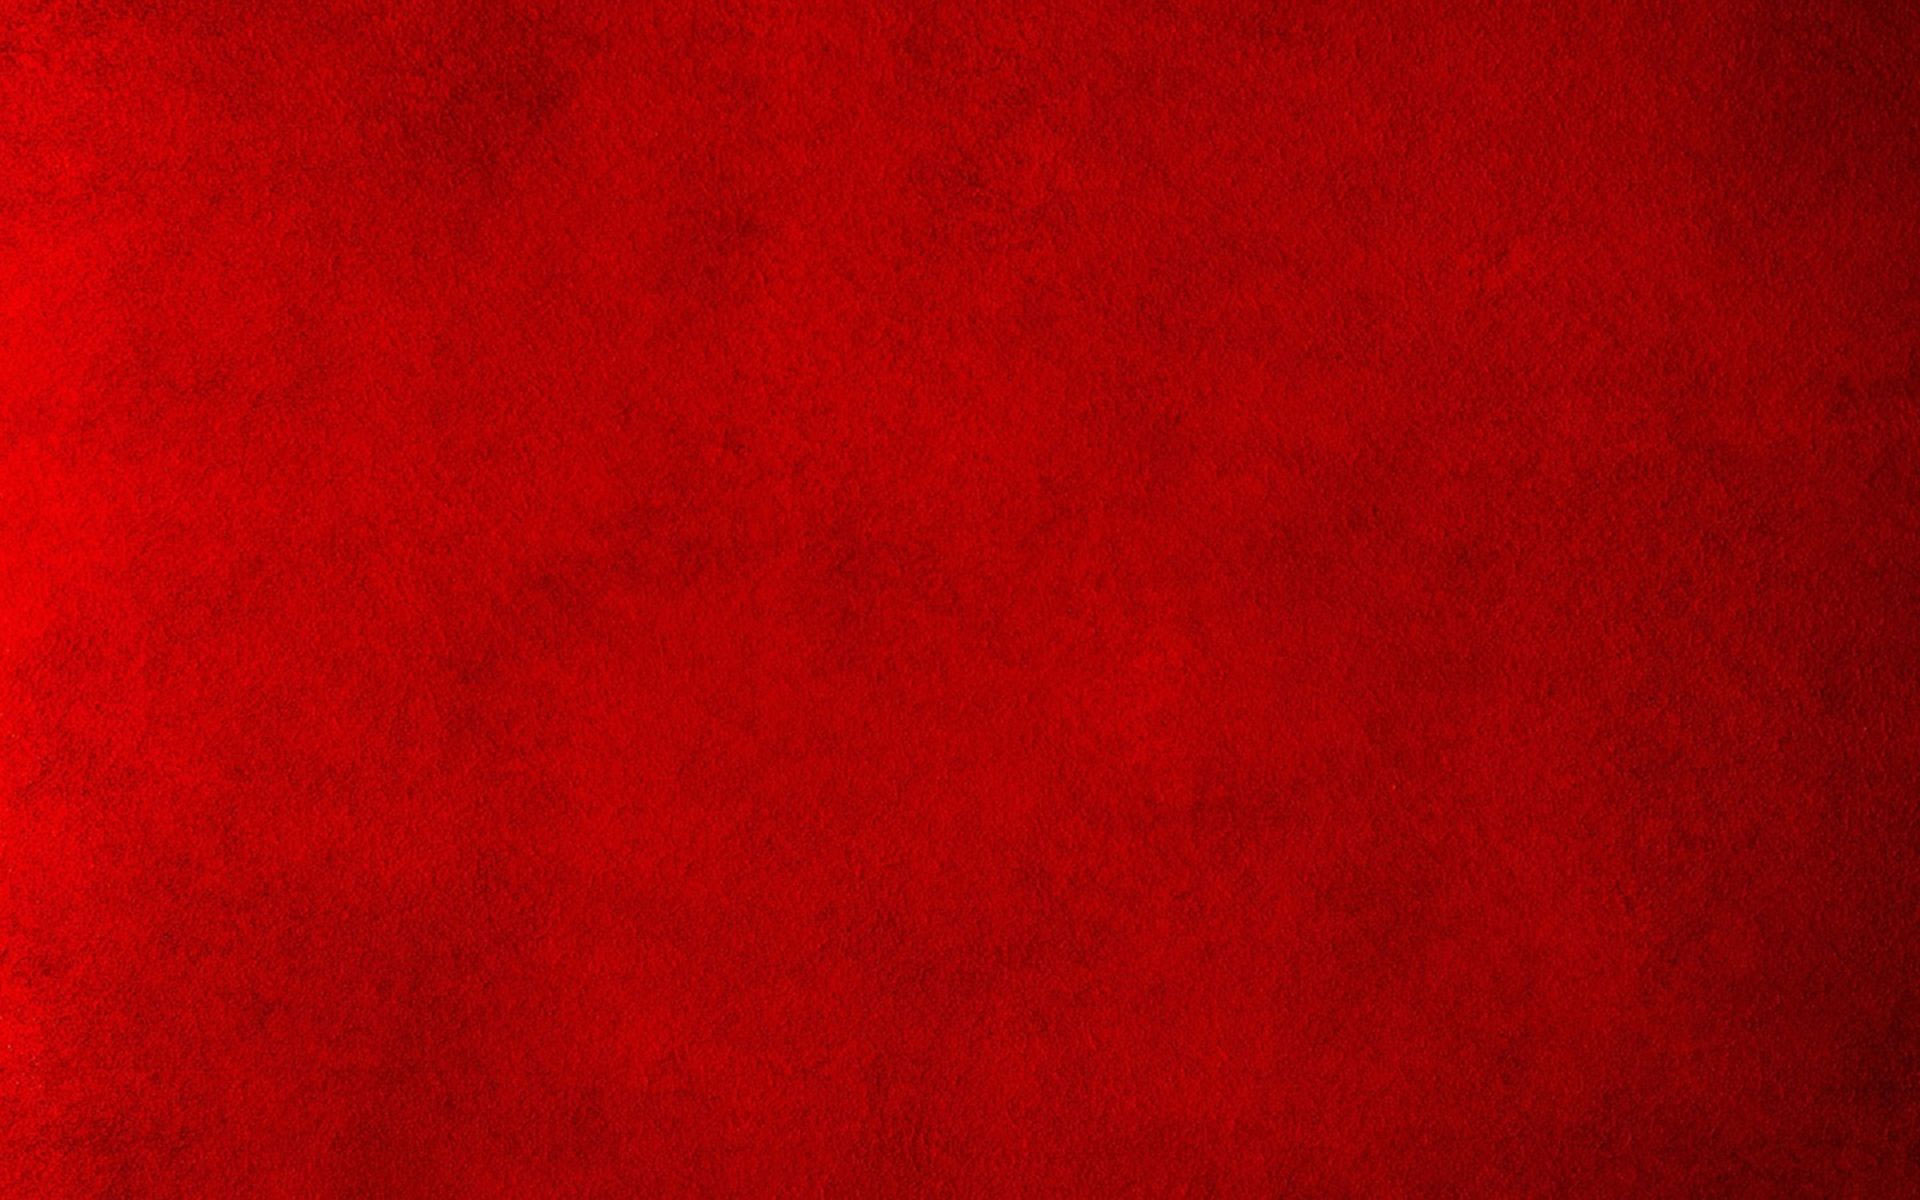 30 HD Red Wallpapers